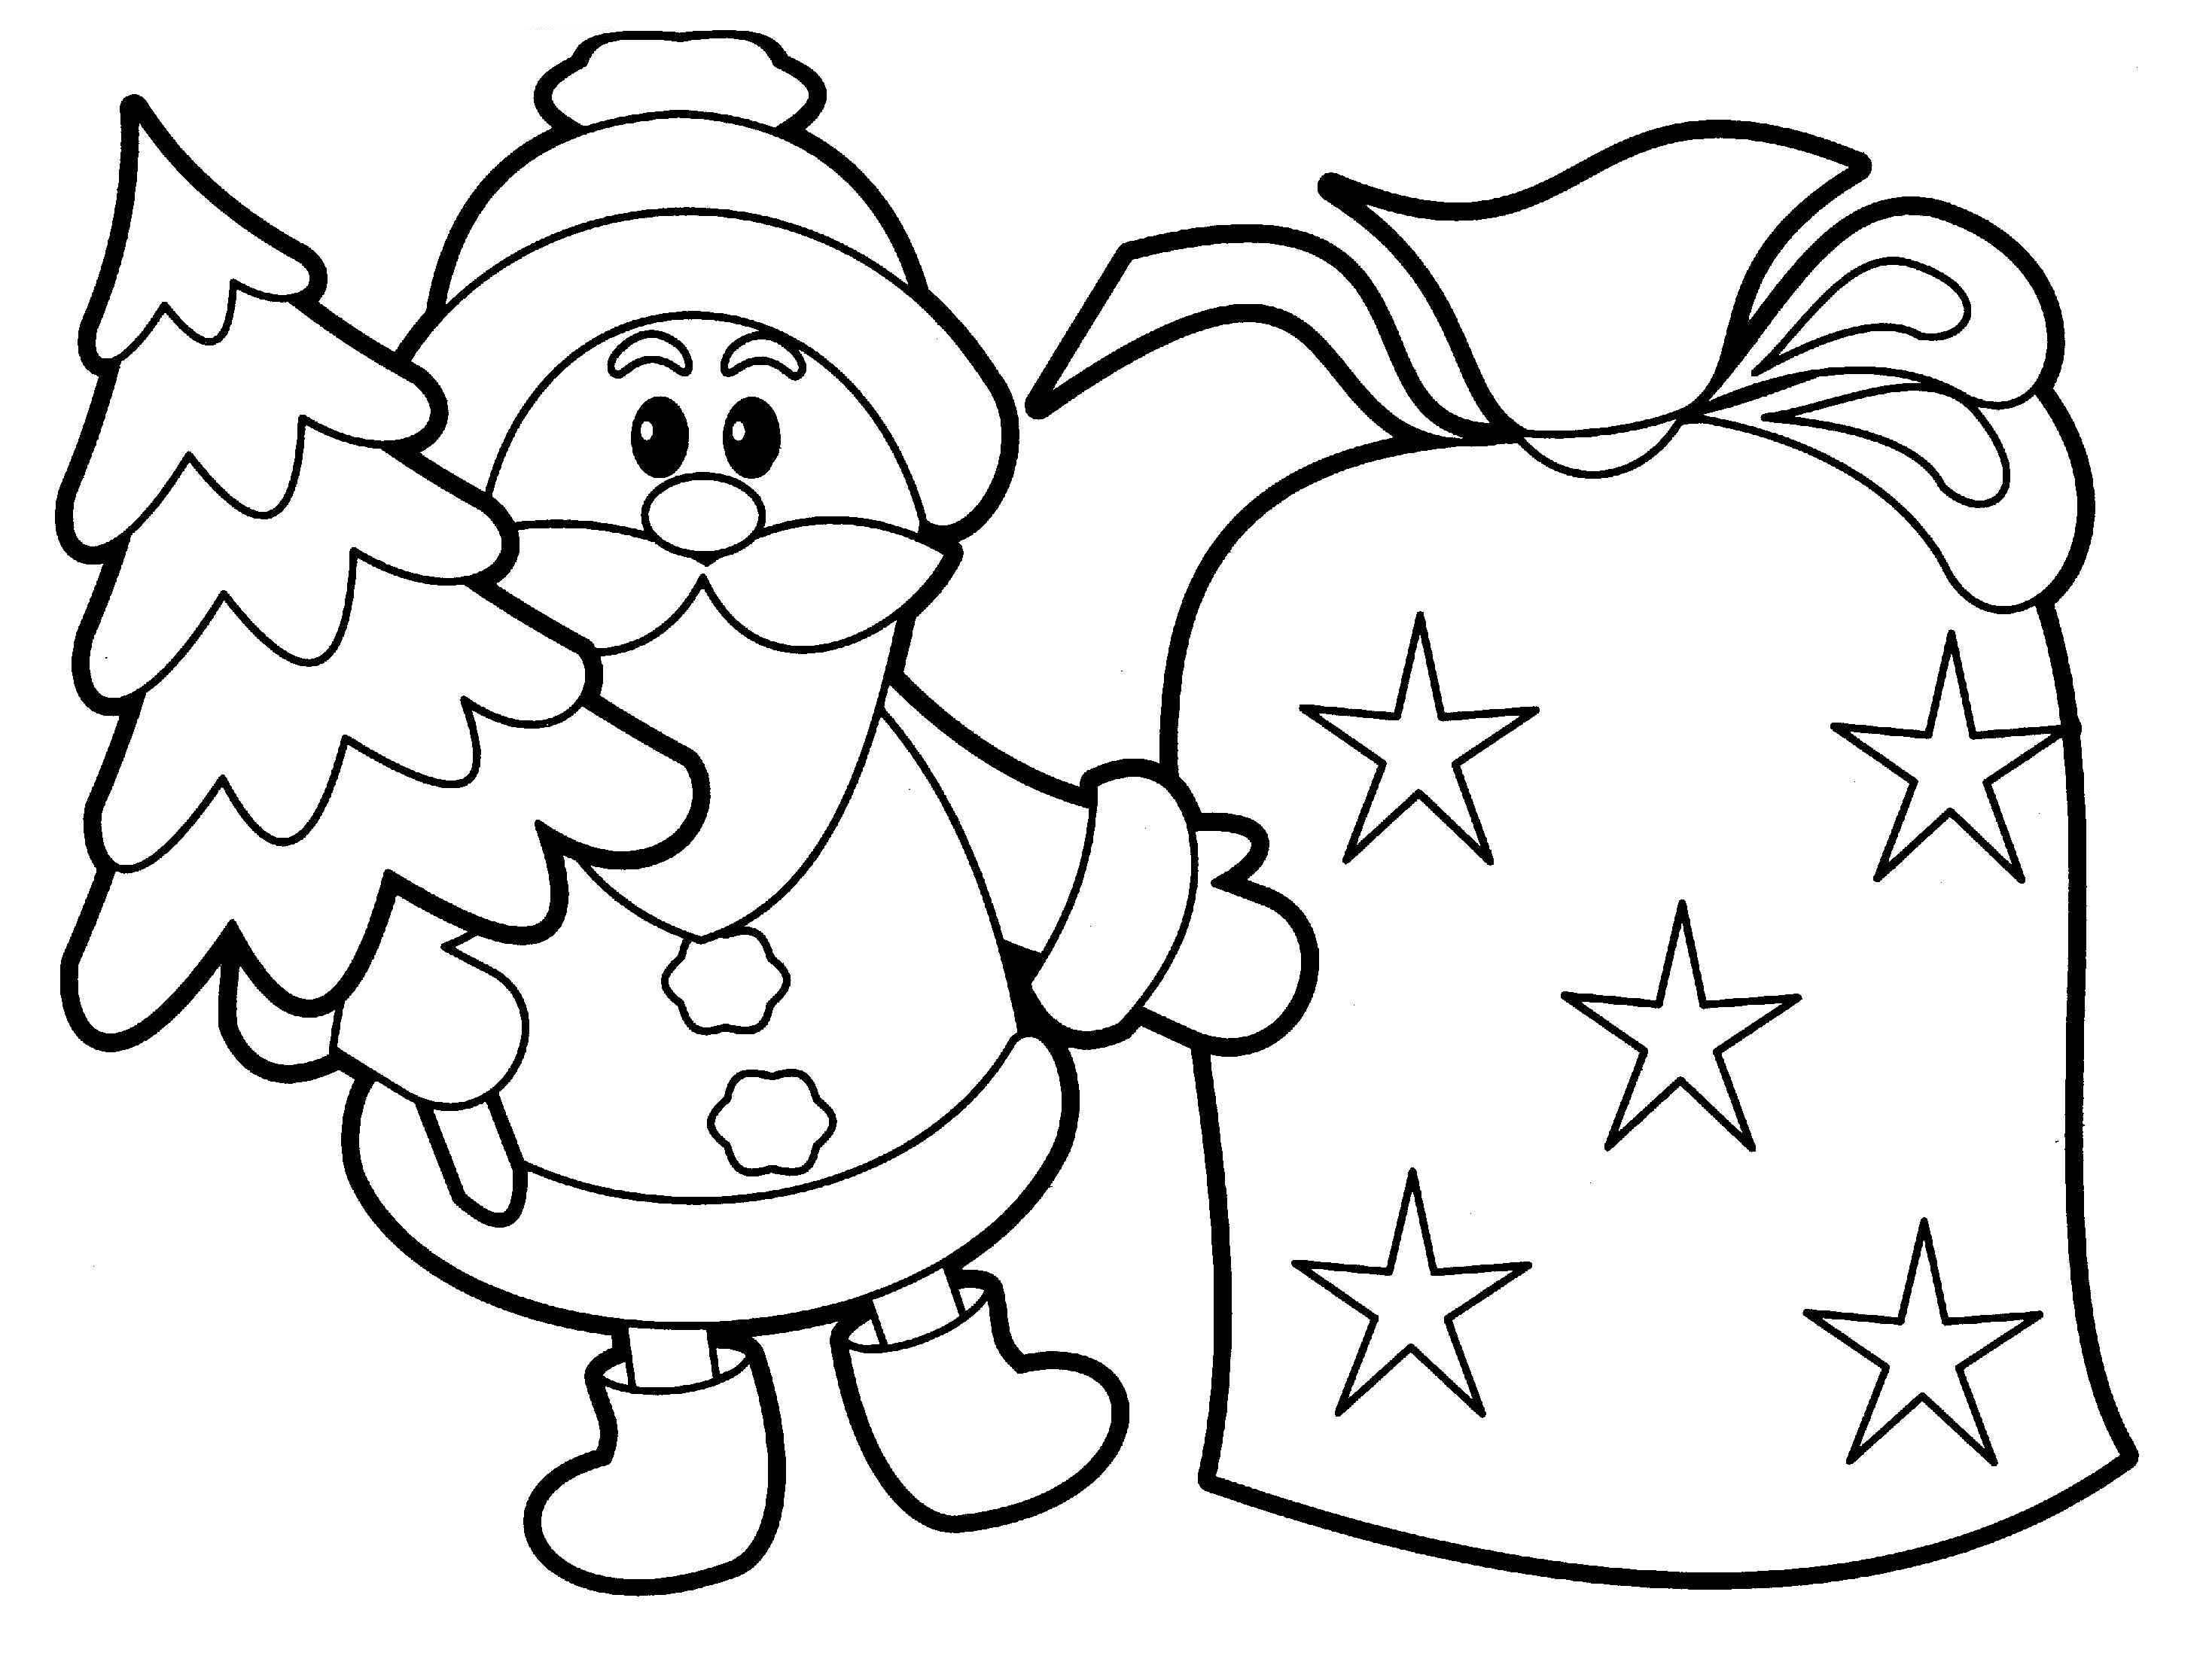 Xmas Coloring Pages Printable Coloring Coloring Pages